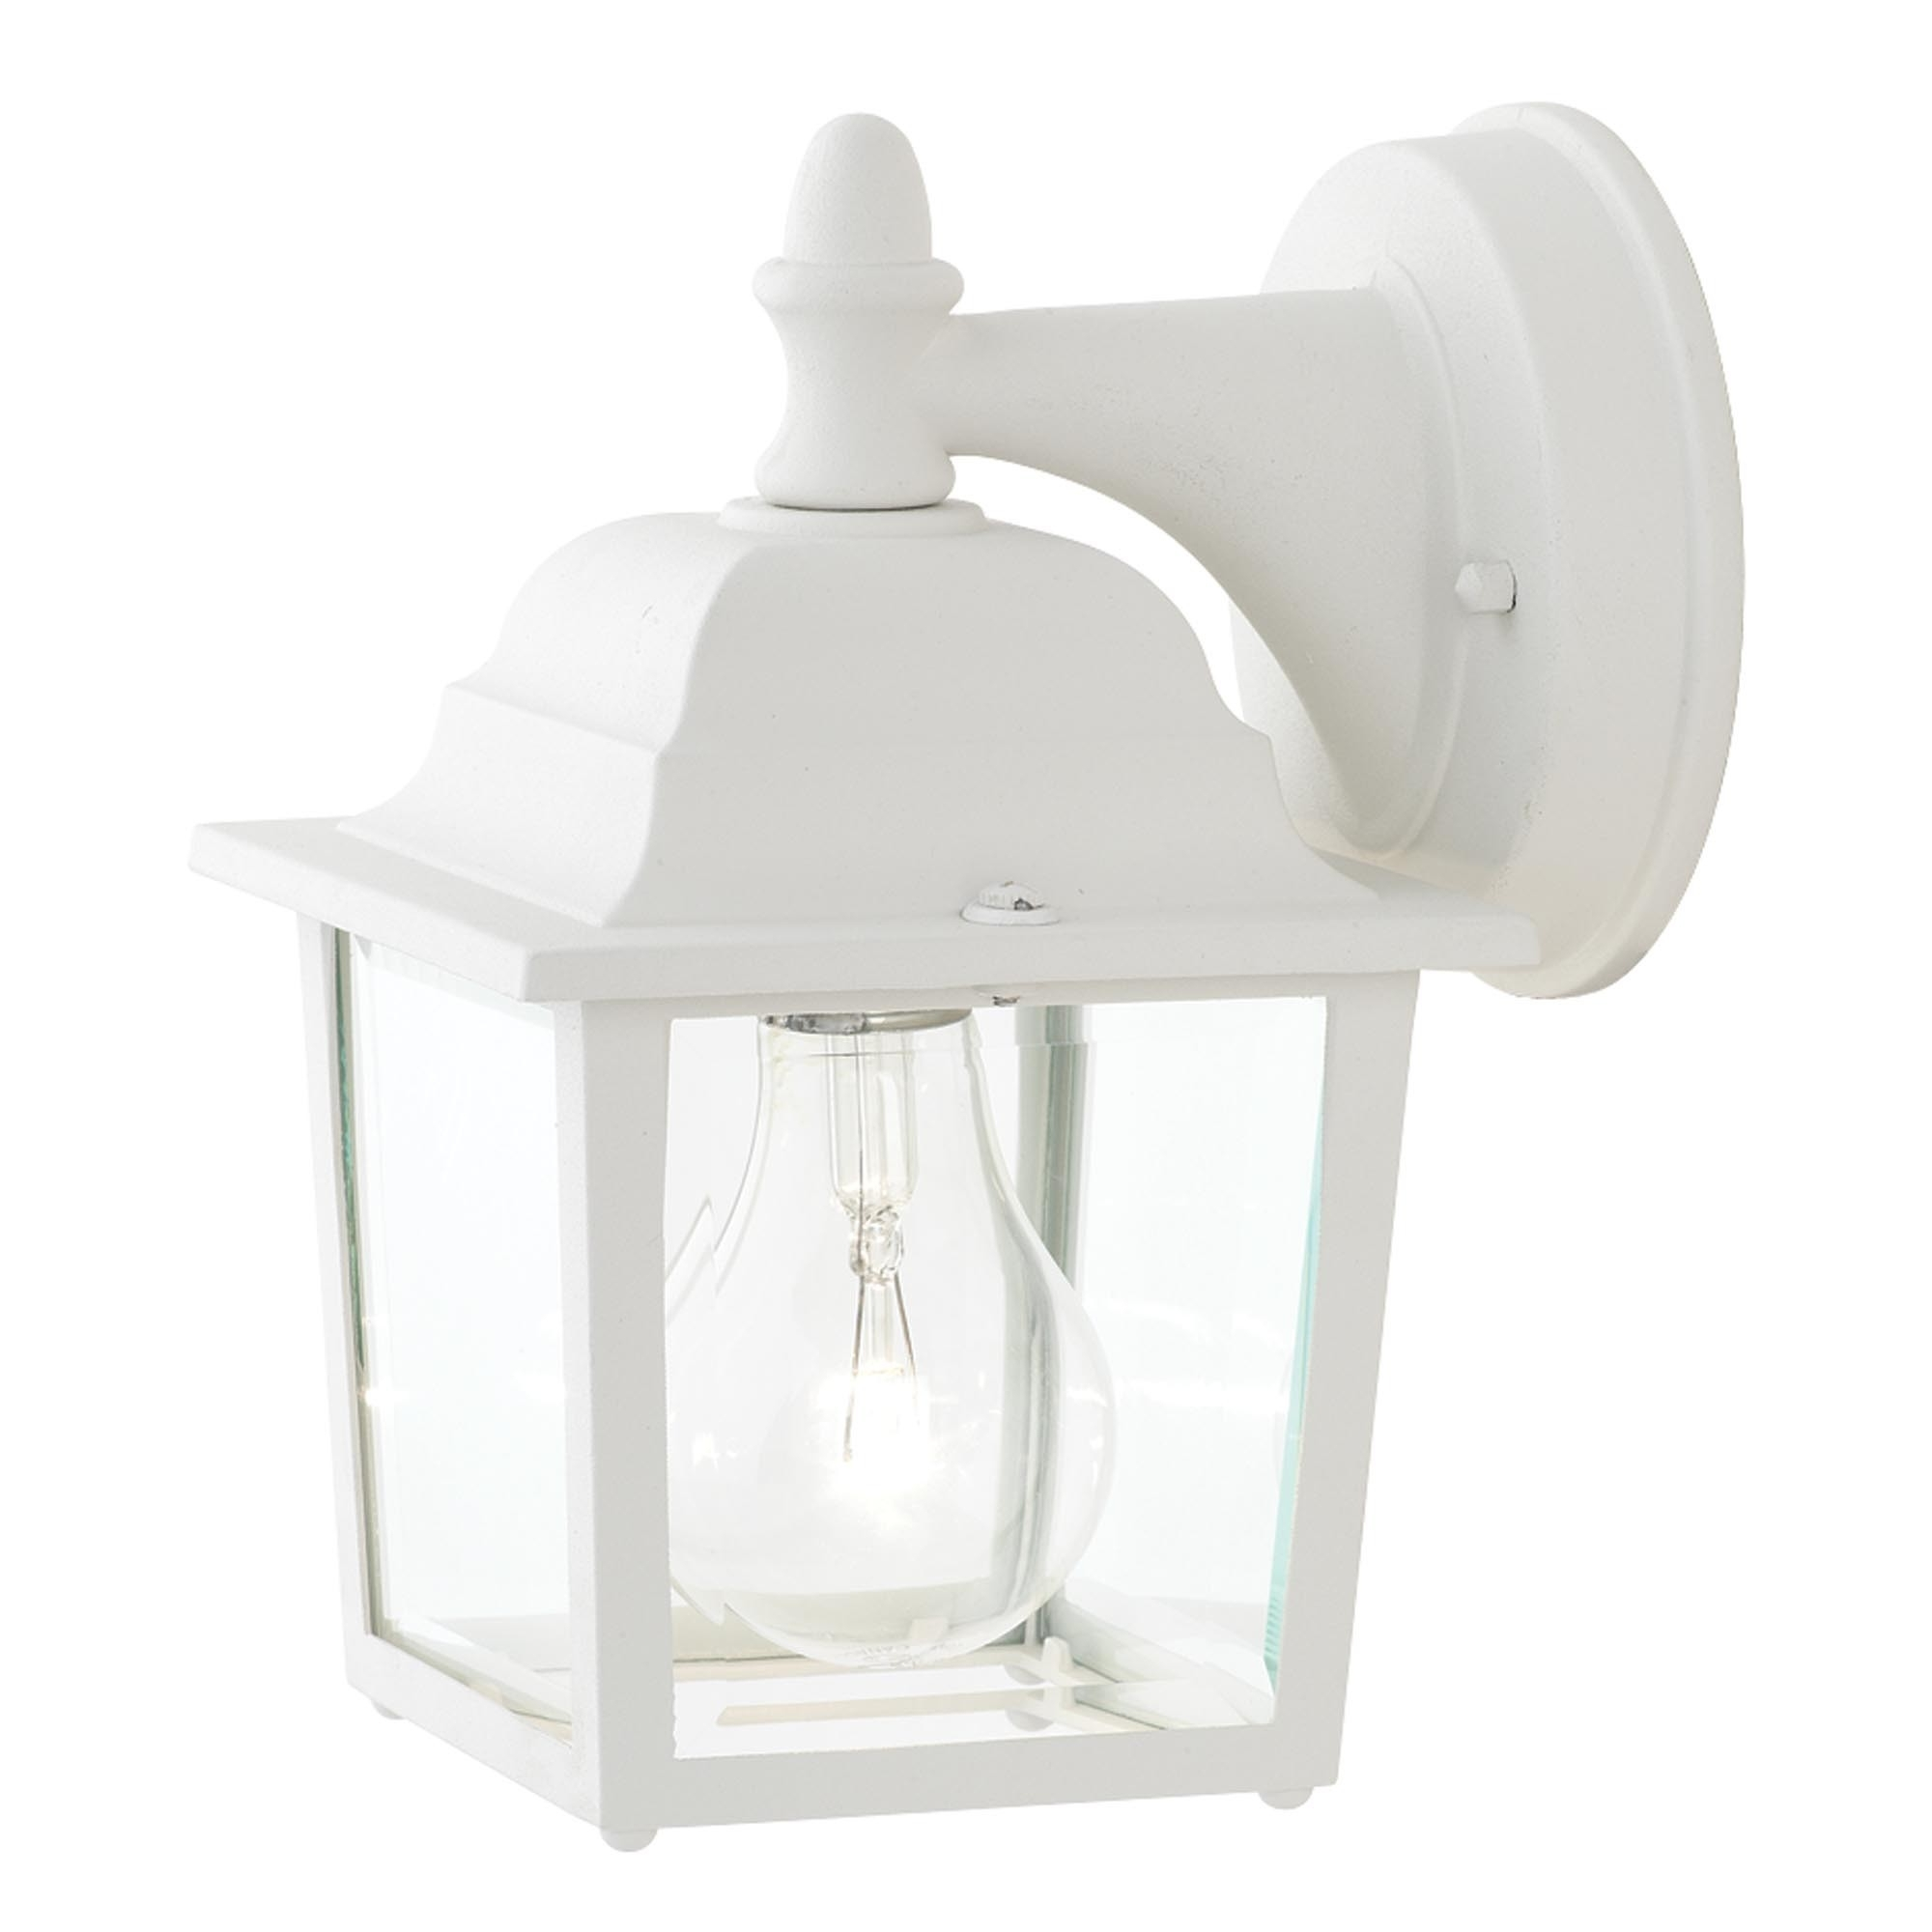 Outdoor Wall Lights In White Intended For Widely Used Light : New White Outside Wall Lights For Gas With Mount Led Light (View 15 of 20)